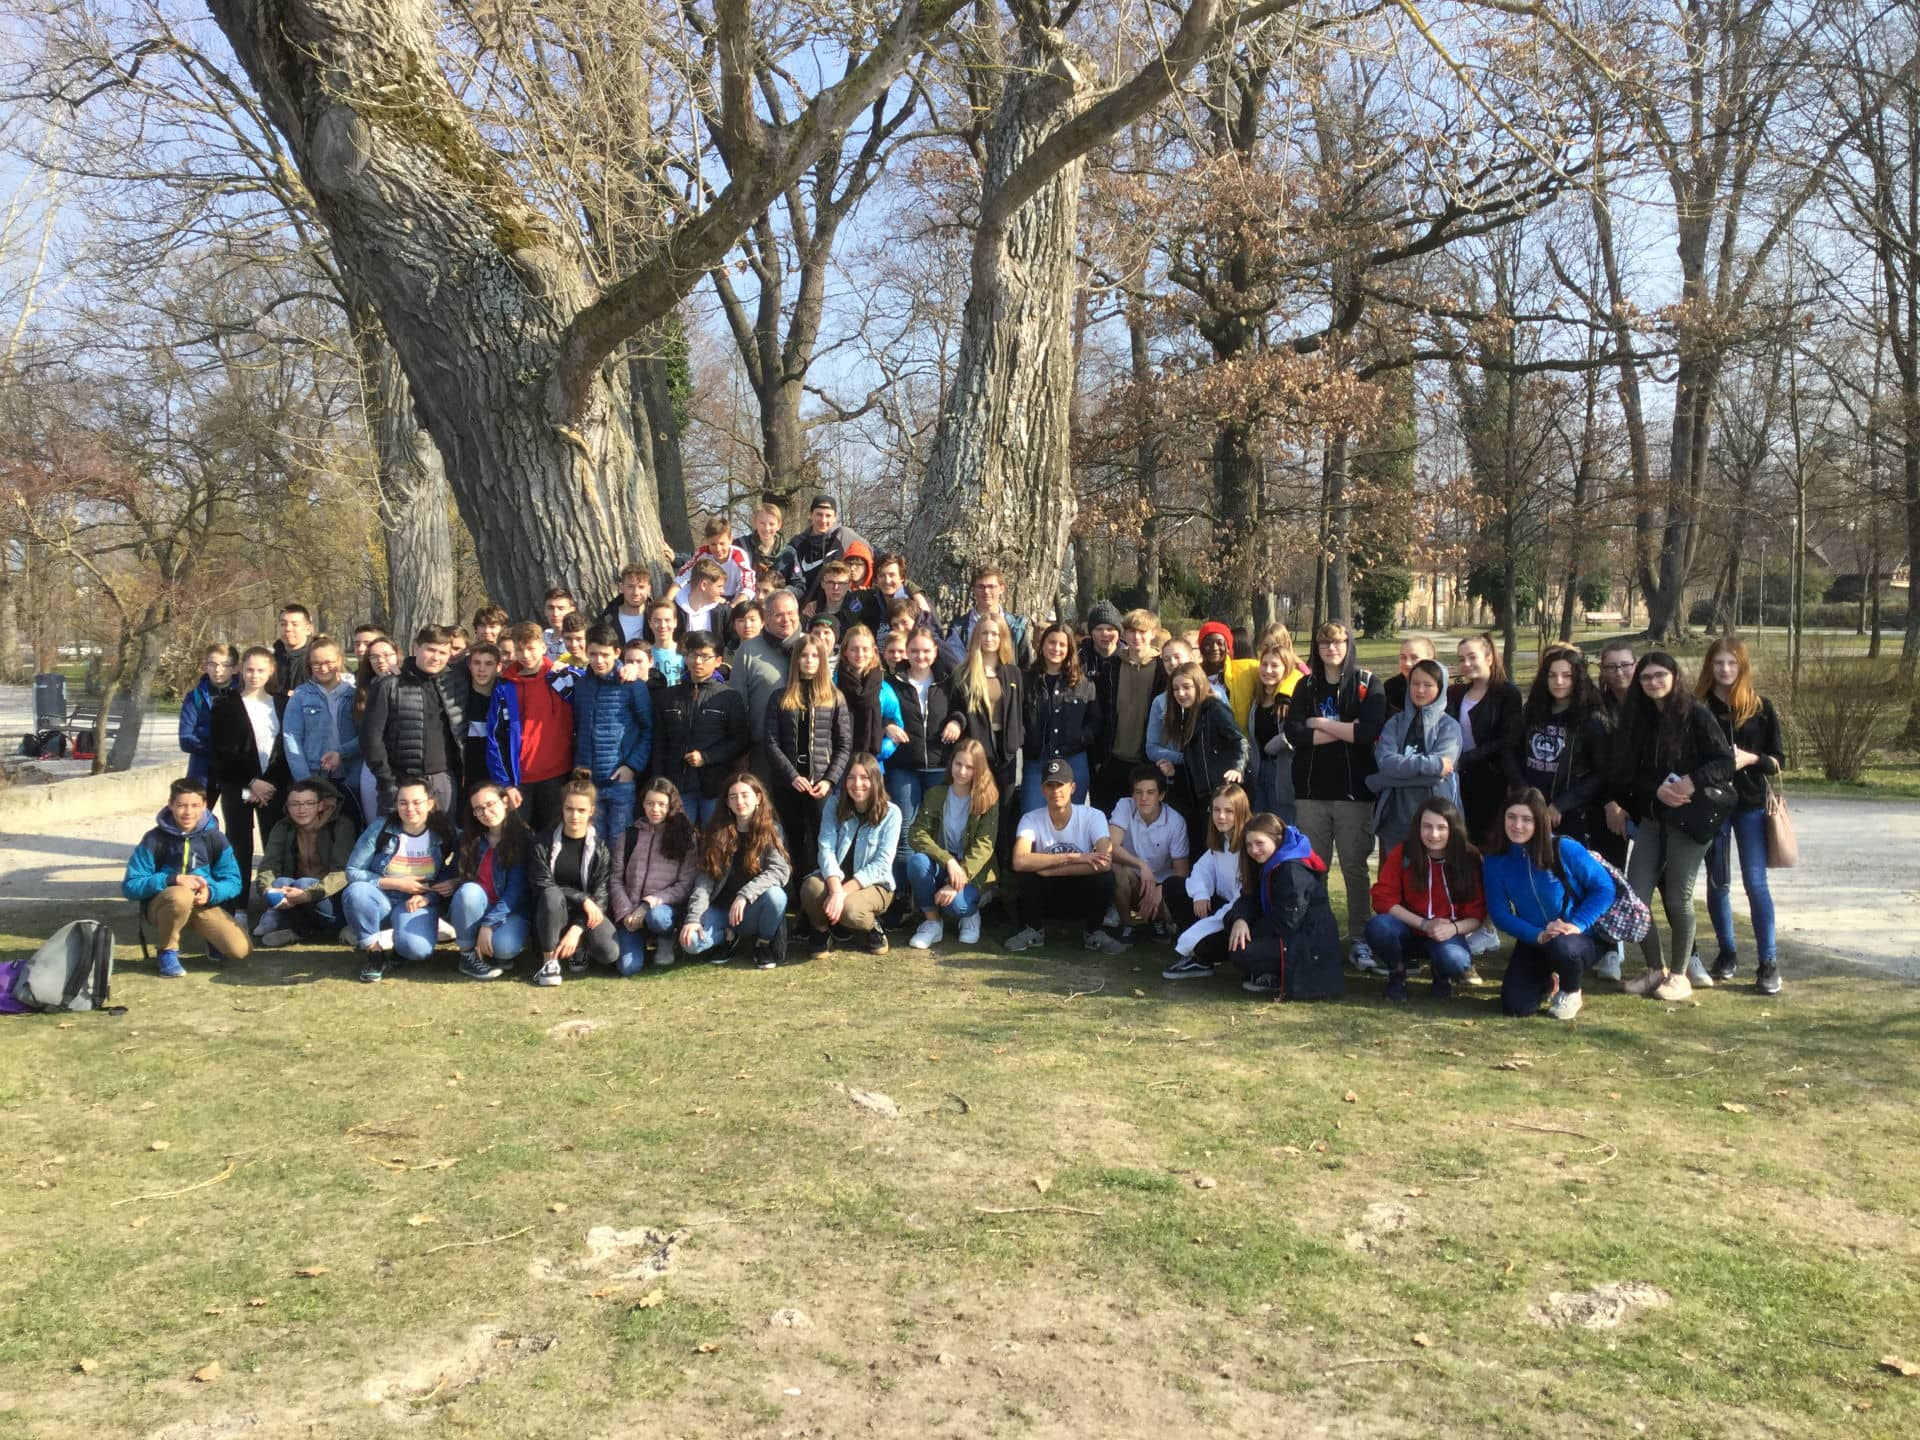 Aecs Munich Avril 2019 - Photo du groupe en Allemagne